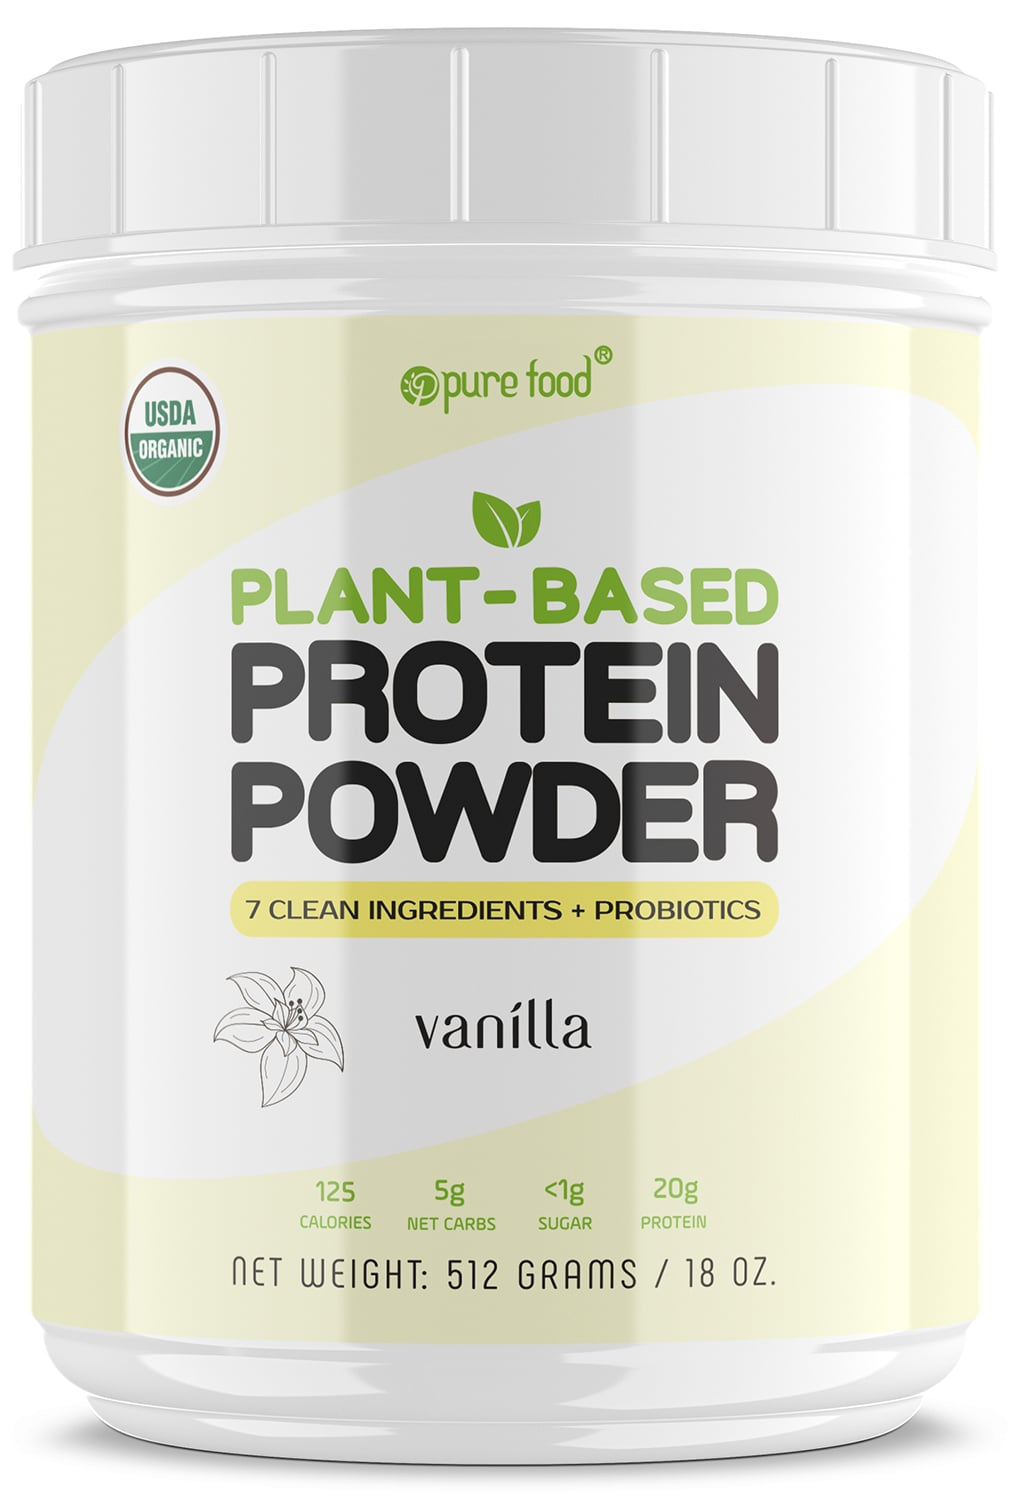 Pure Food Plant Based Protein Powder: VANILLA - 512g Tub